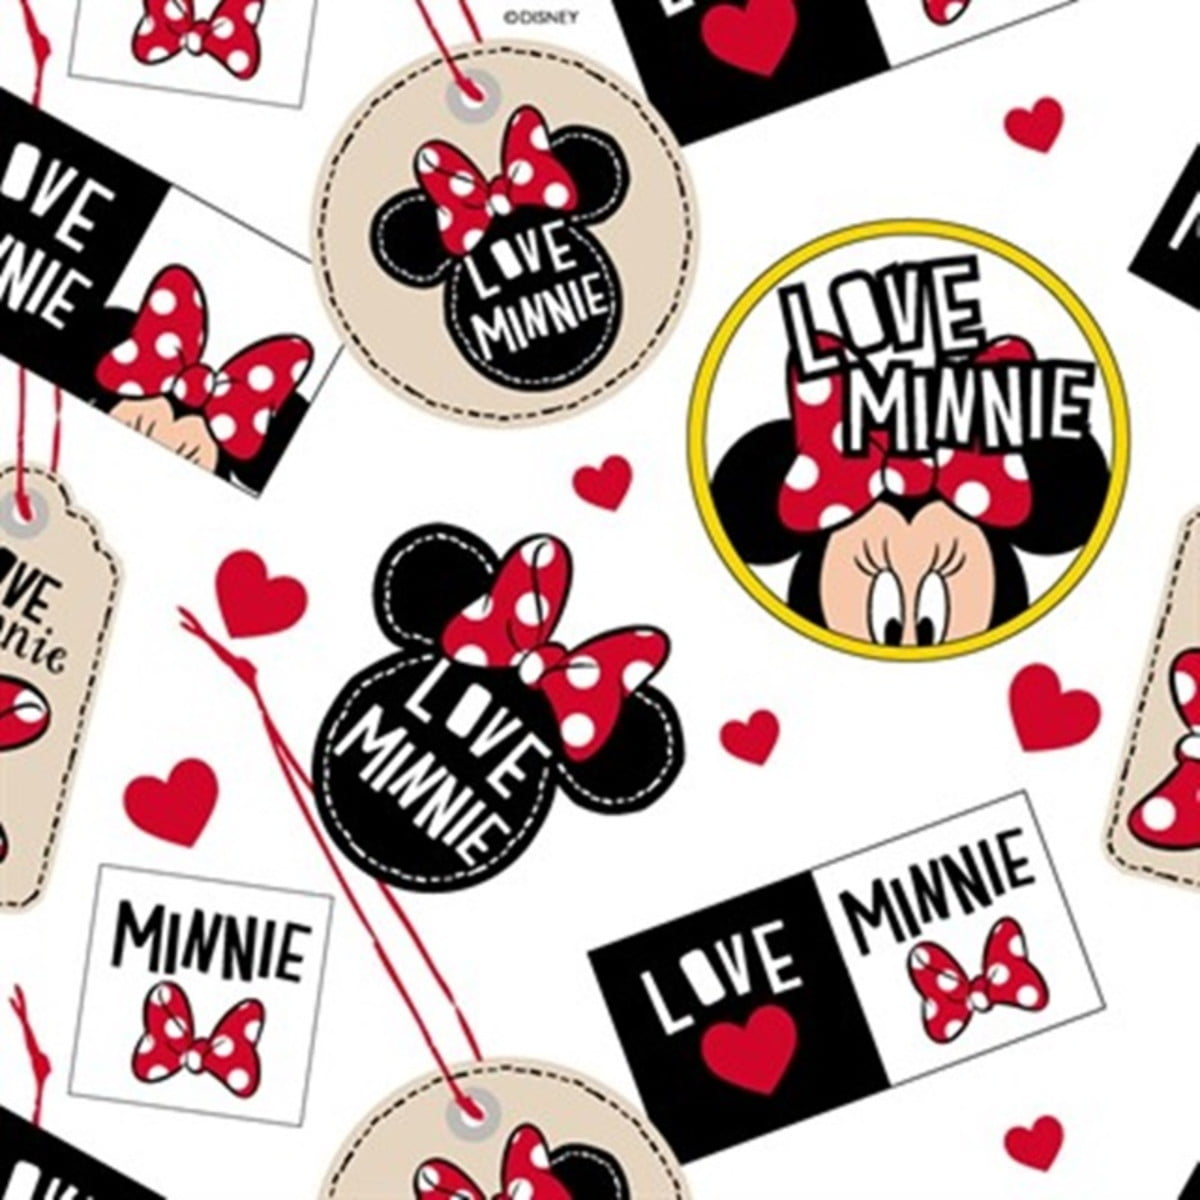 Tecido Tricoline Minnie Love Minnie